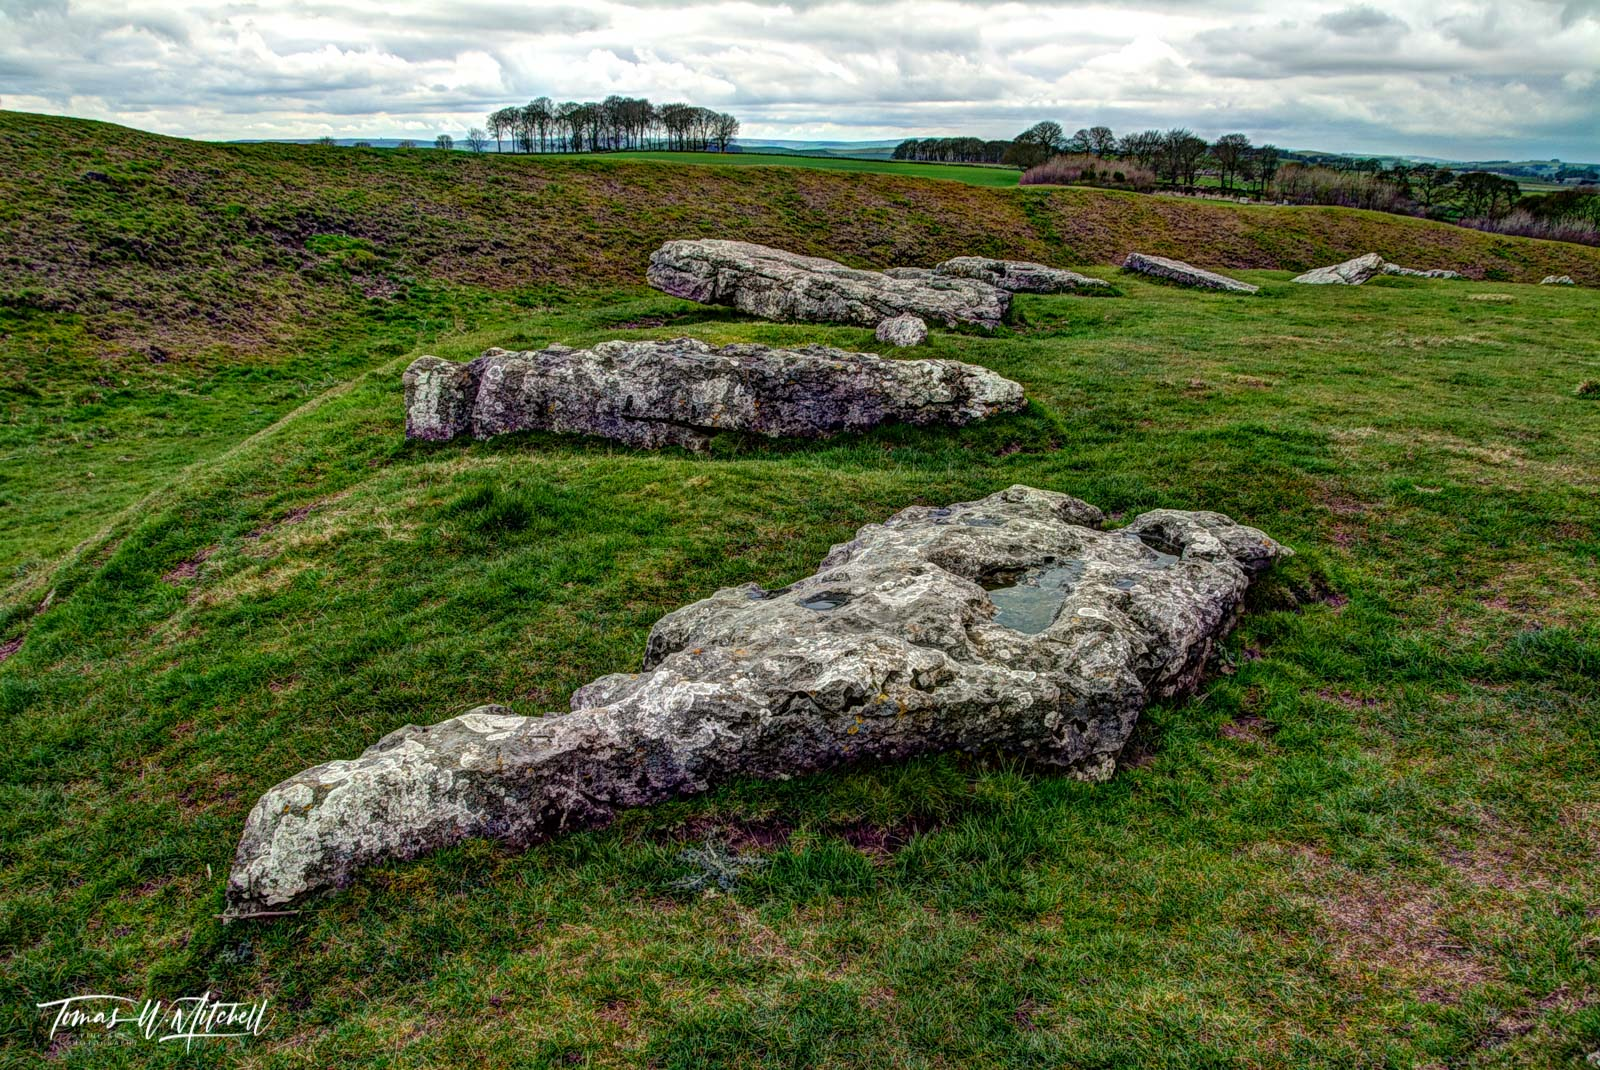 limited edition, museum grade, fine art, prints, photographing, arbor low, england, fallen gods, henge, stones, ancient, standing stones, photo